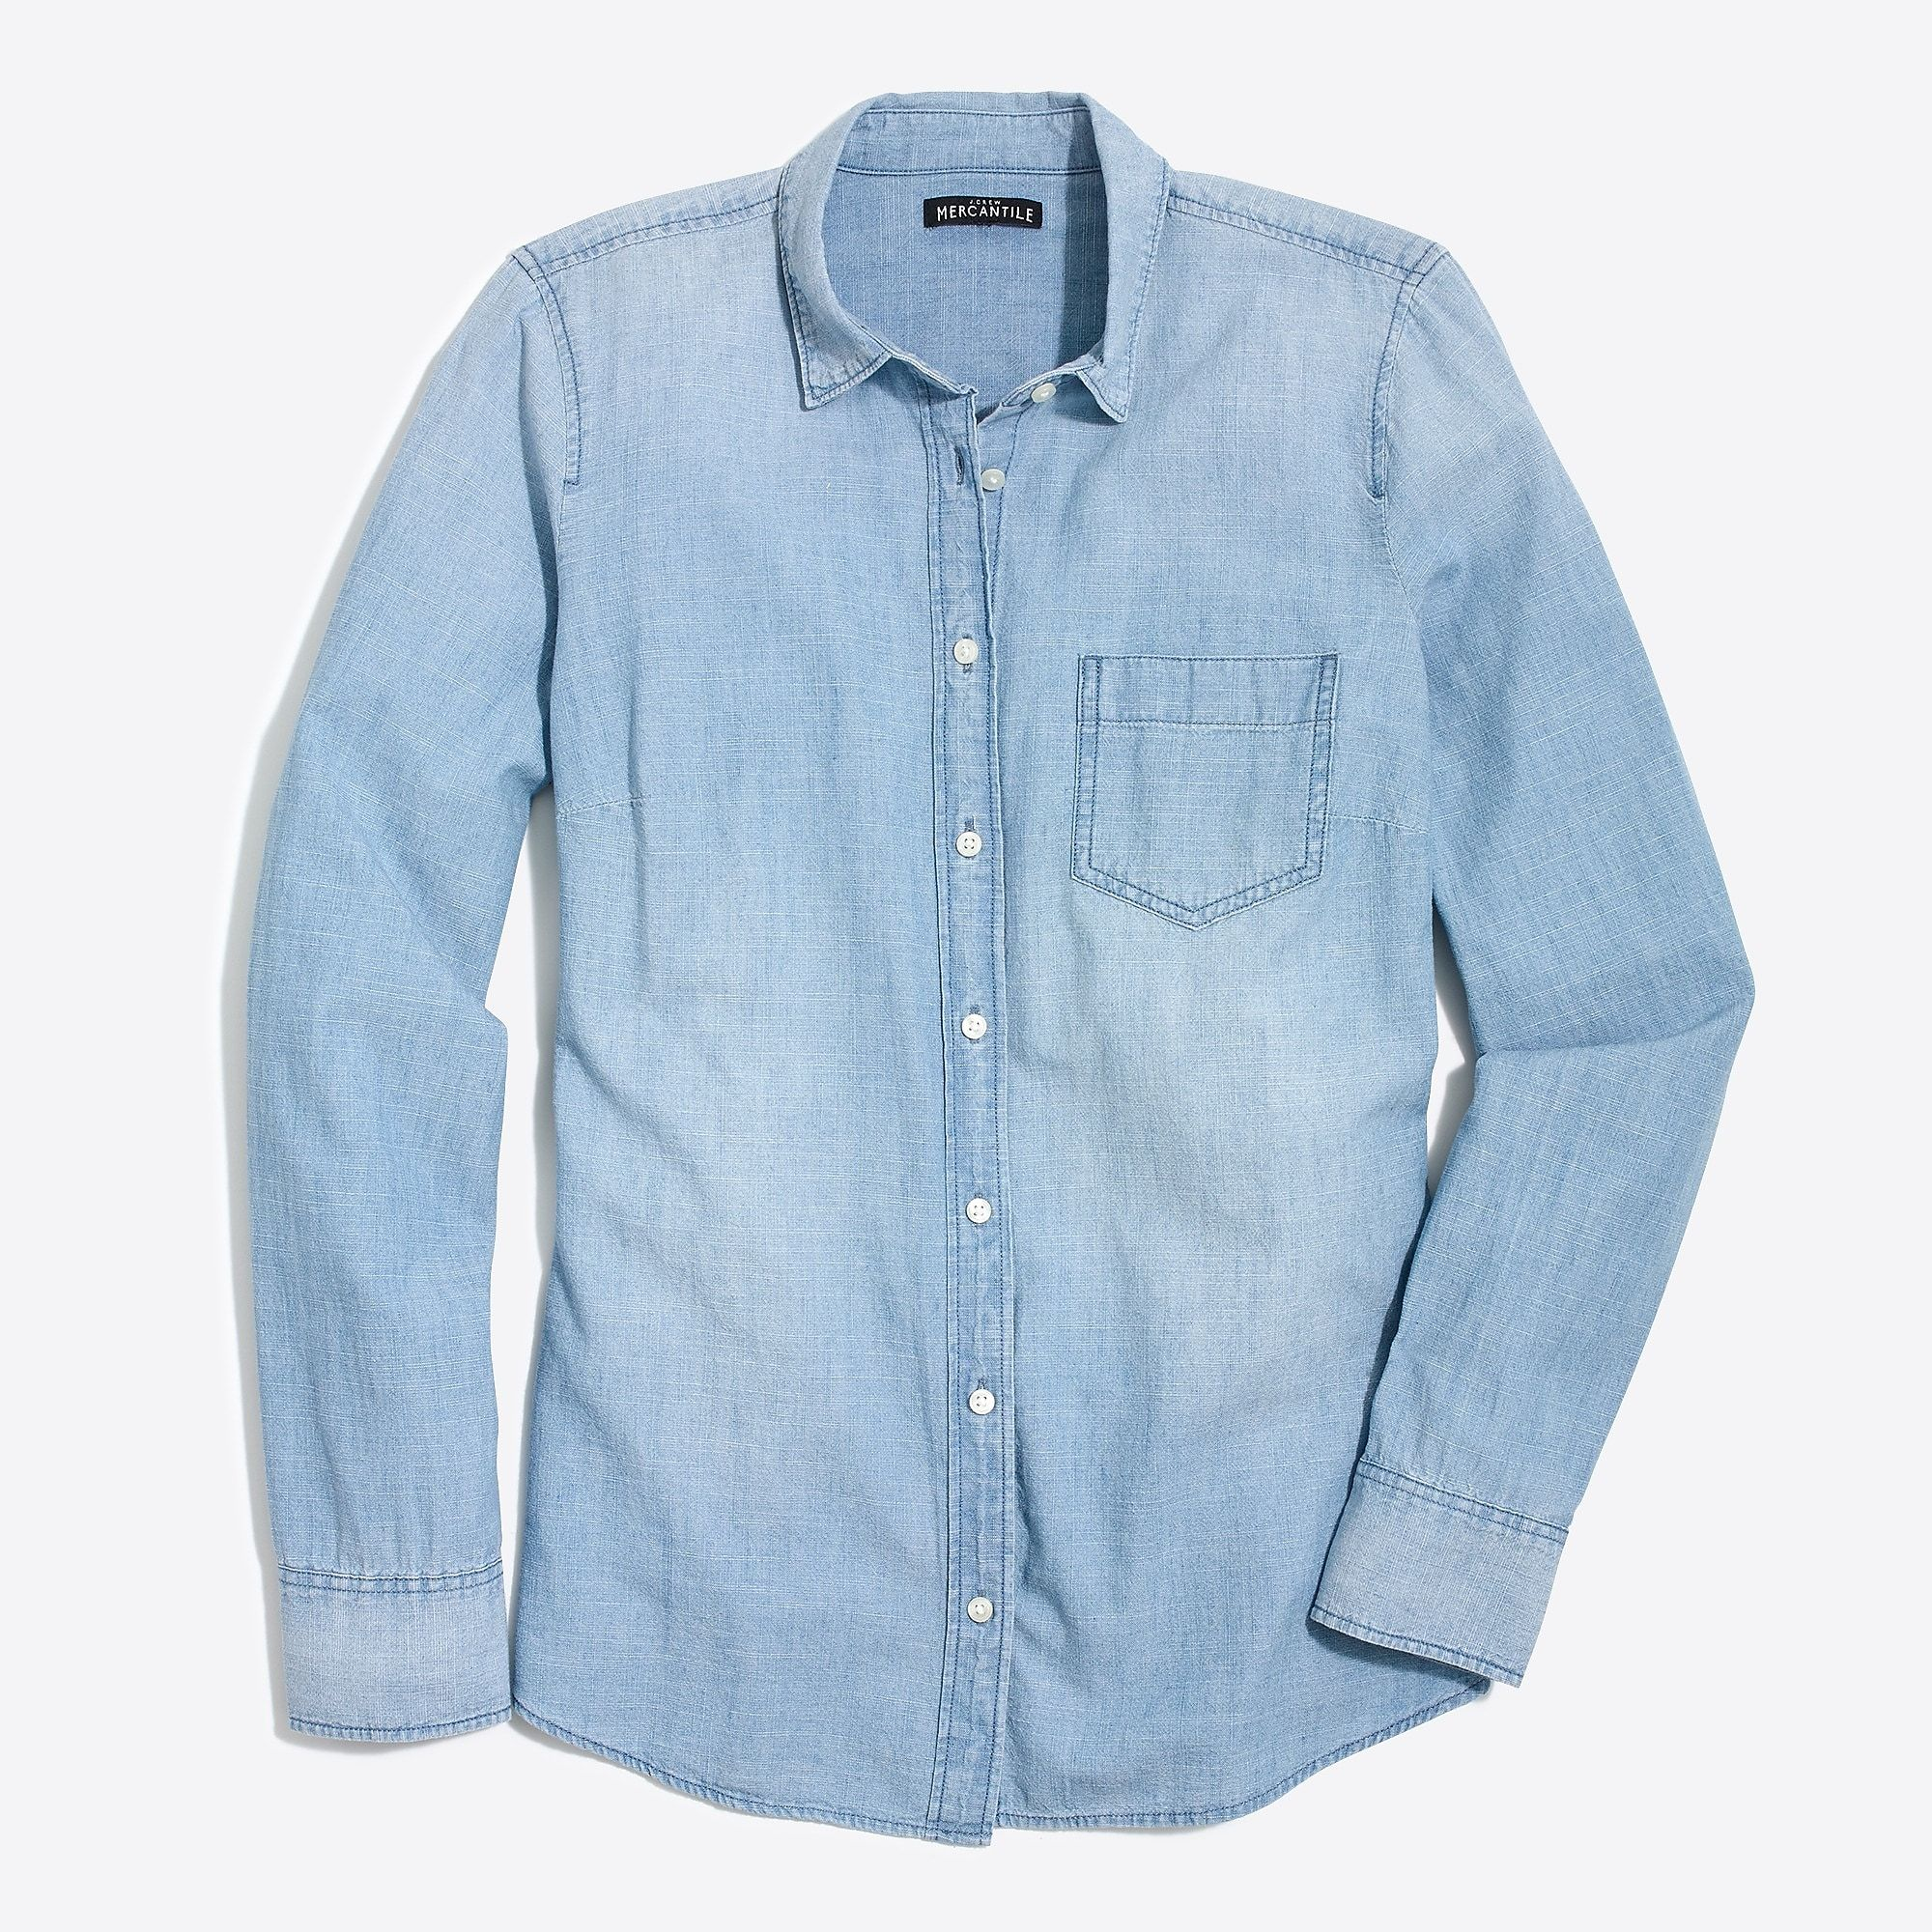 2699f19fd7 Chambray shirt in perfect fit   FactoryWomen Button-Ups